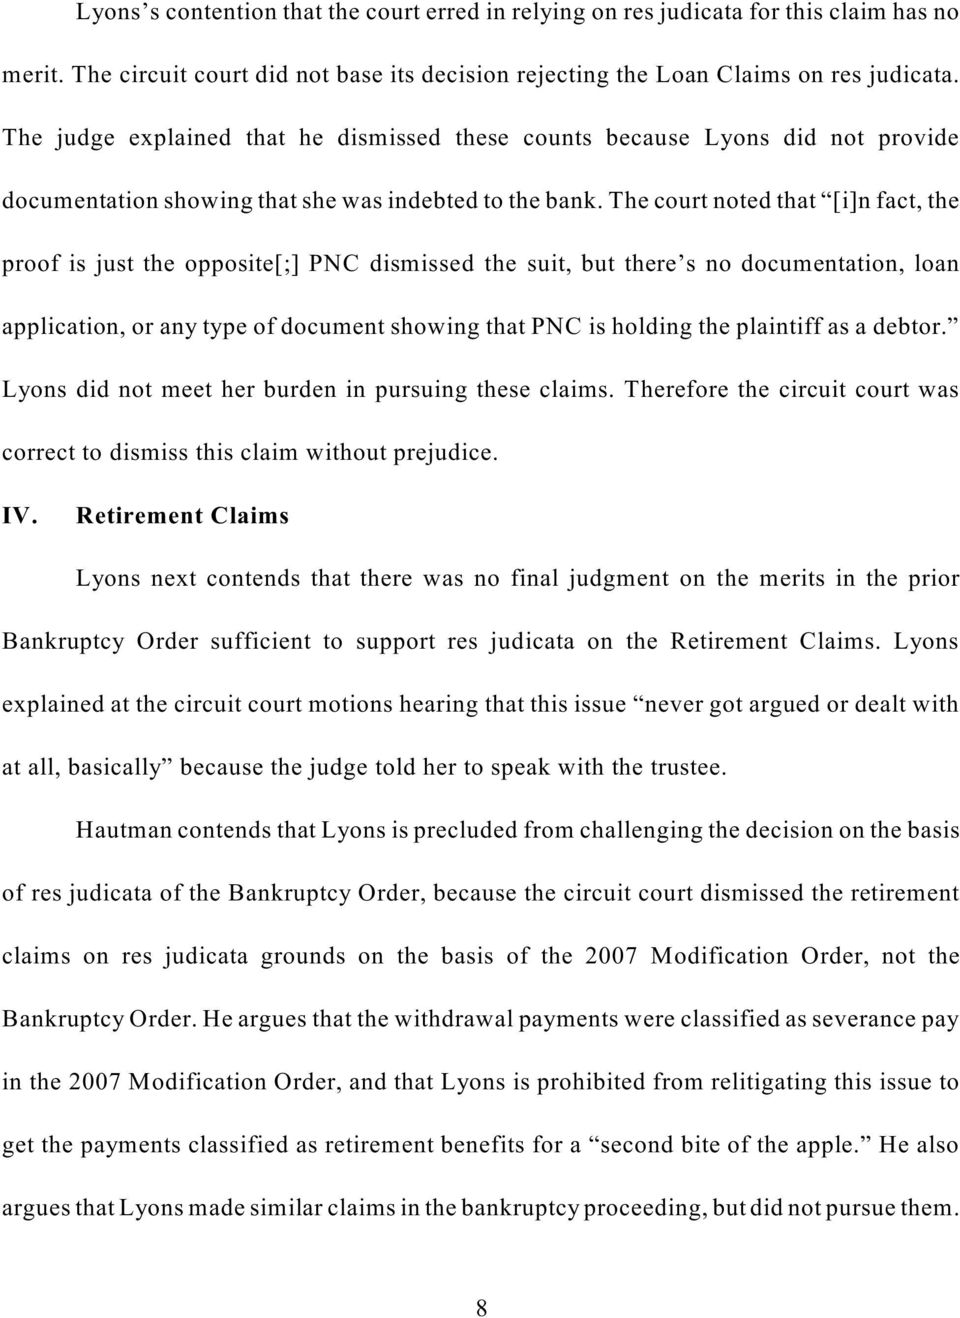 The court noted that [i]n fact, the proof is just the opposite[;] PNC dismissed the suit, but there s no documentation, loan application, or any type of document showing that PNC is holding the